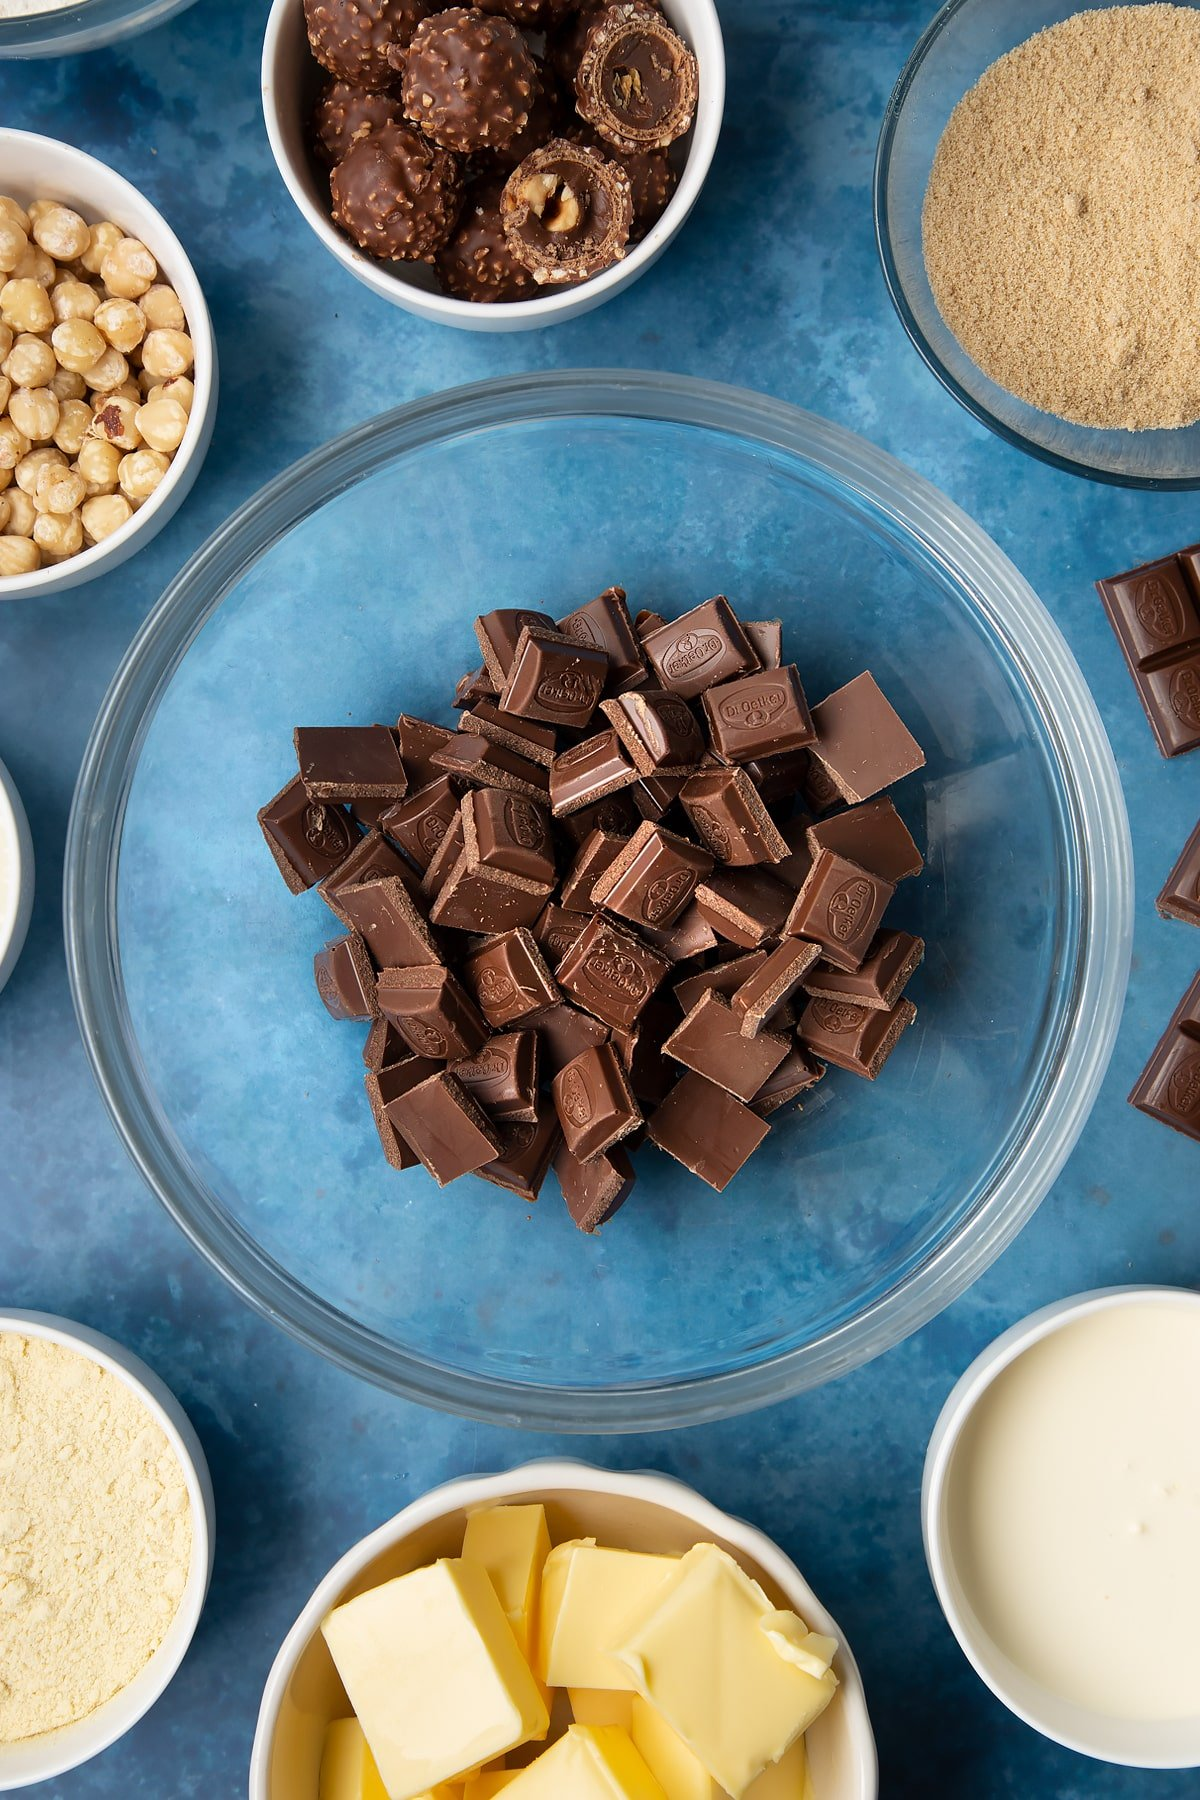 Dark chocolate in a glass mixing bowl. Ingredients to make a Ferrero Rocher slice surround the bowl.